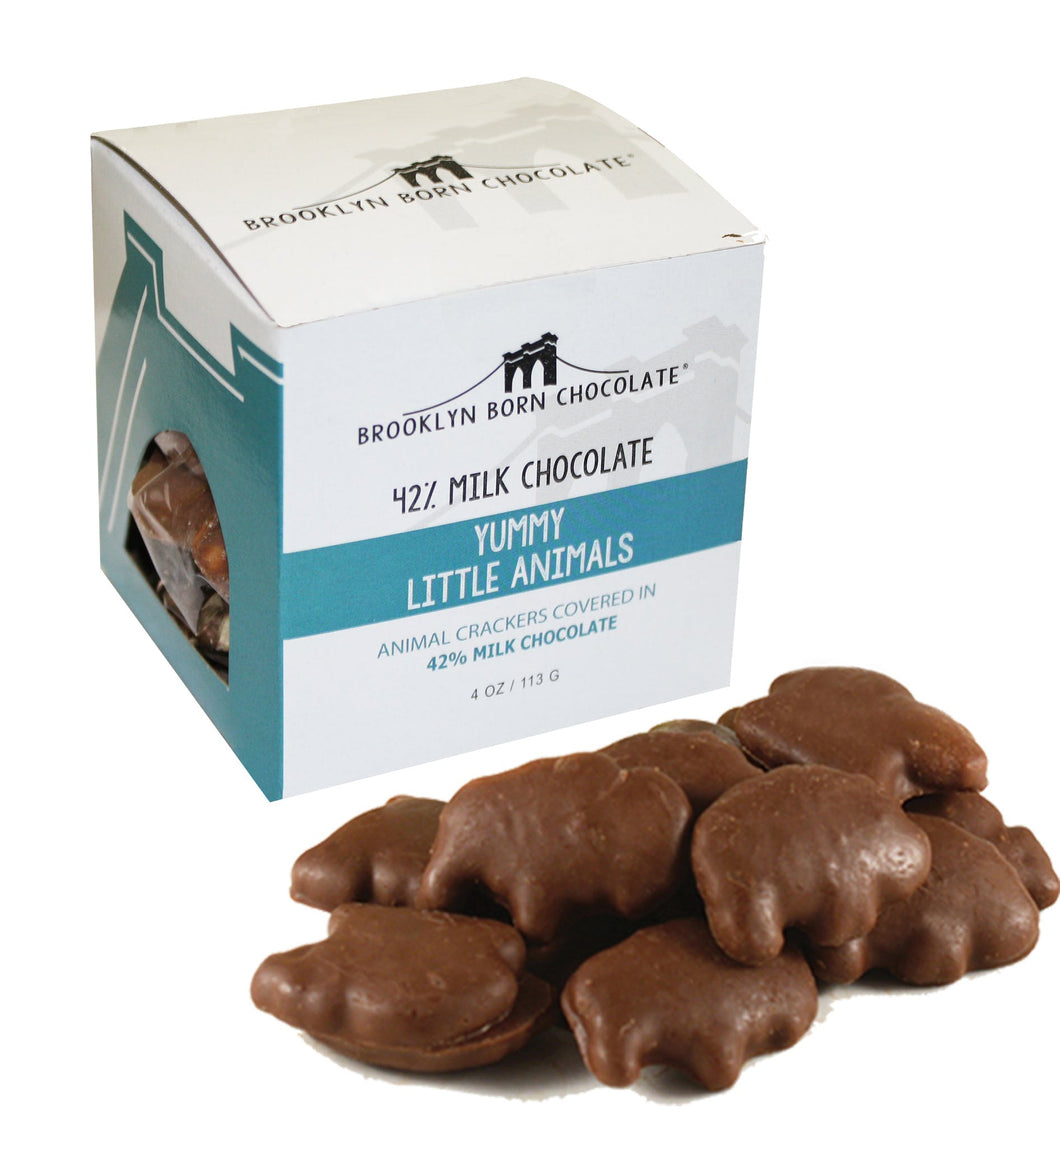 Brooklyn Born Chocolate - Yummy Little Animals 4 oz - Animal Crackers Covered in 42% Milk Chocolate